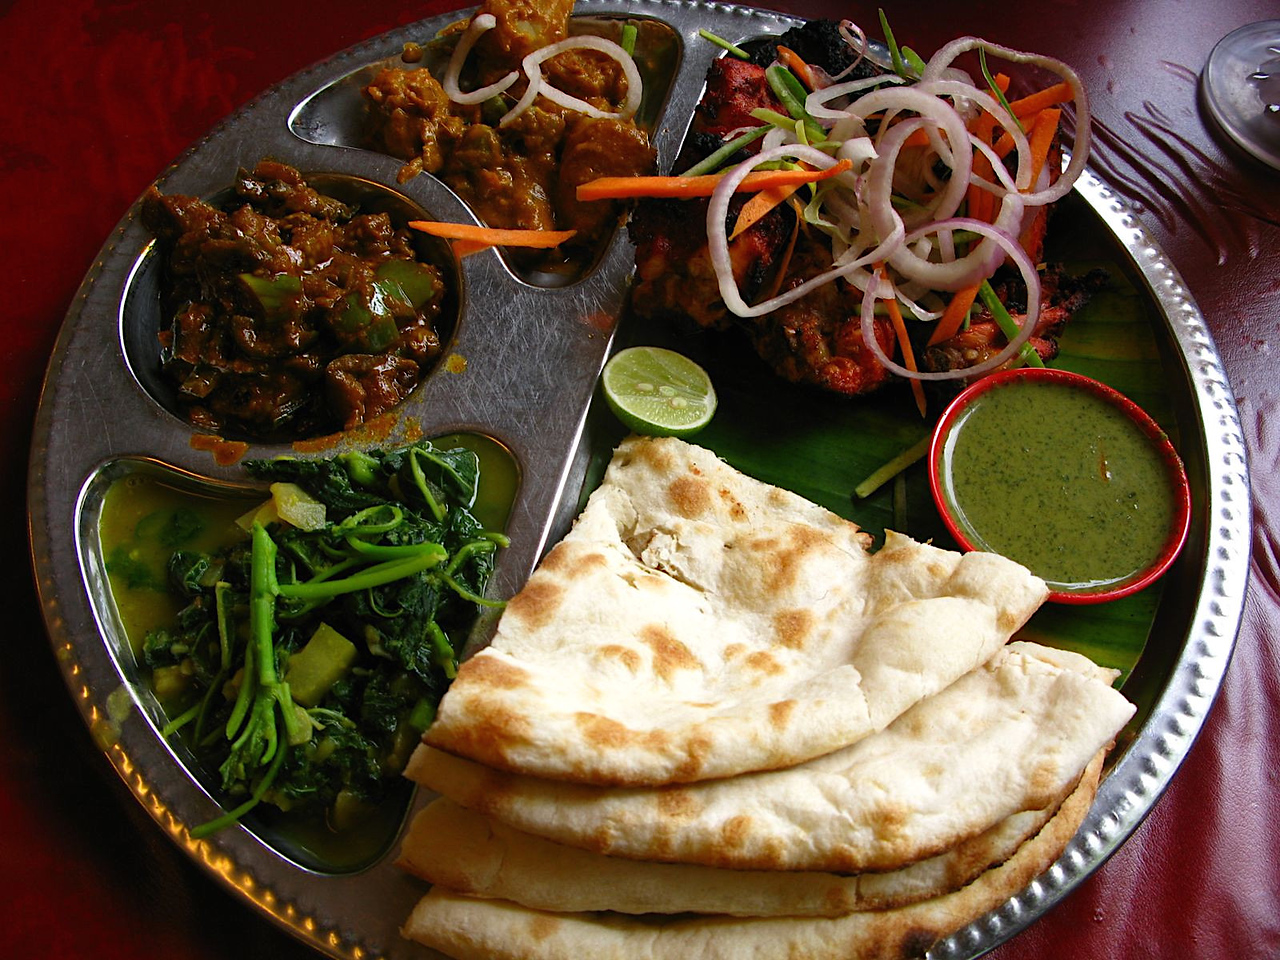 Naan bread: for celiacs, it needs to be avoided in Malaysia as with anywhere else, but there are lots of safe Indian dishes to eat instead.